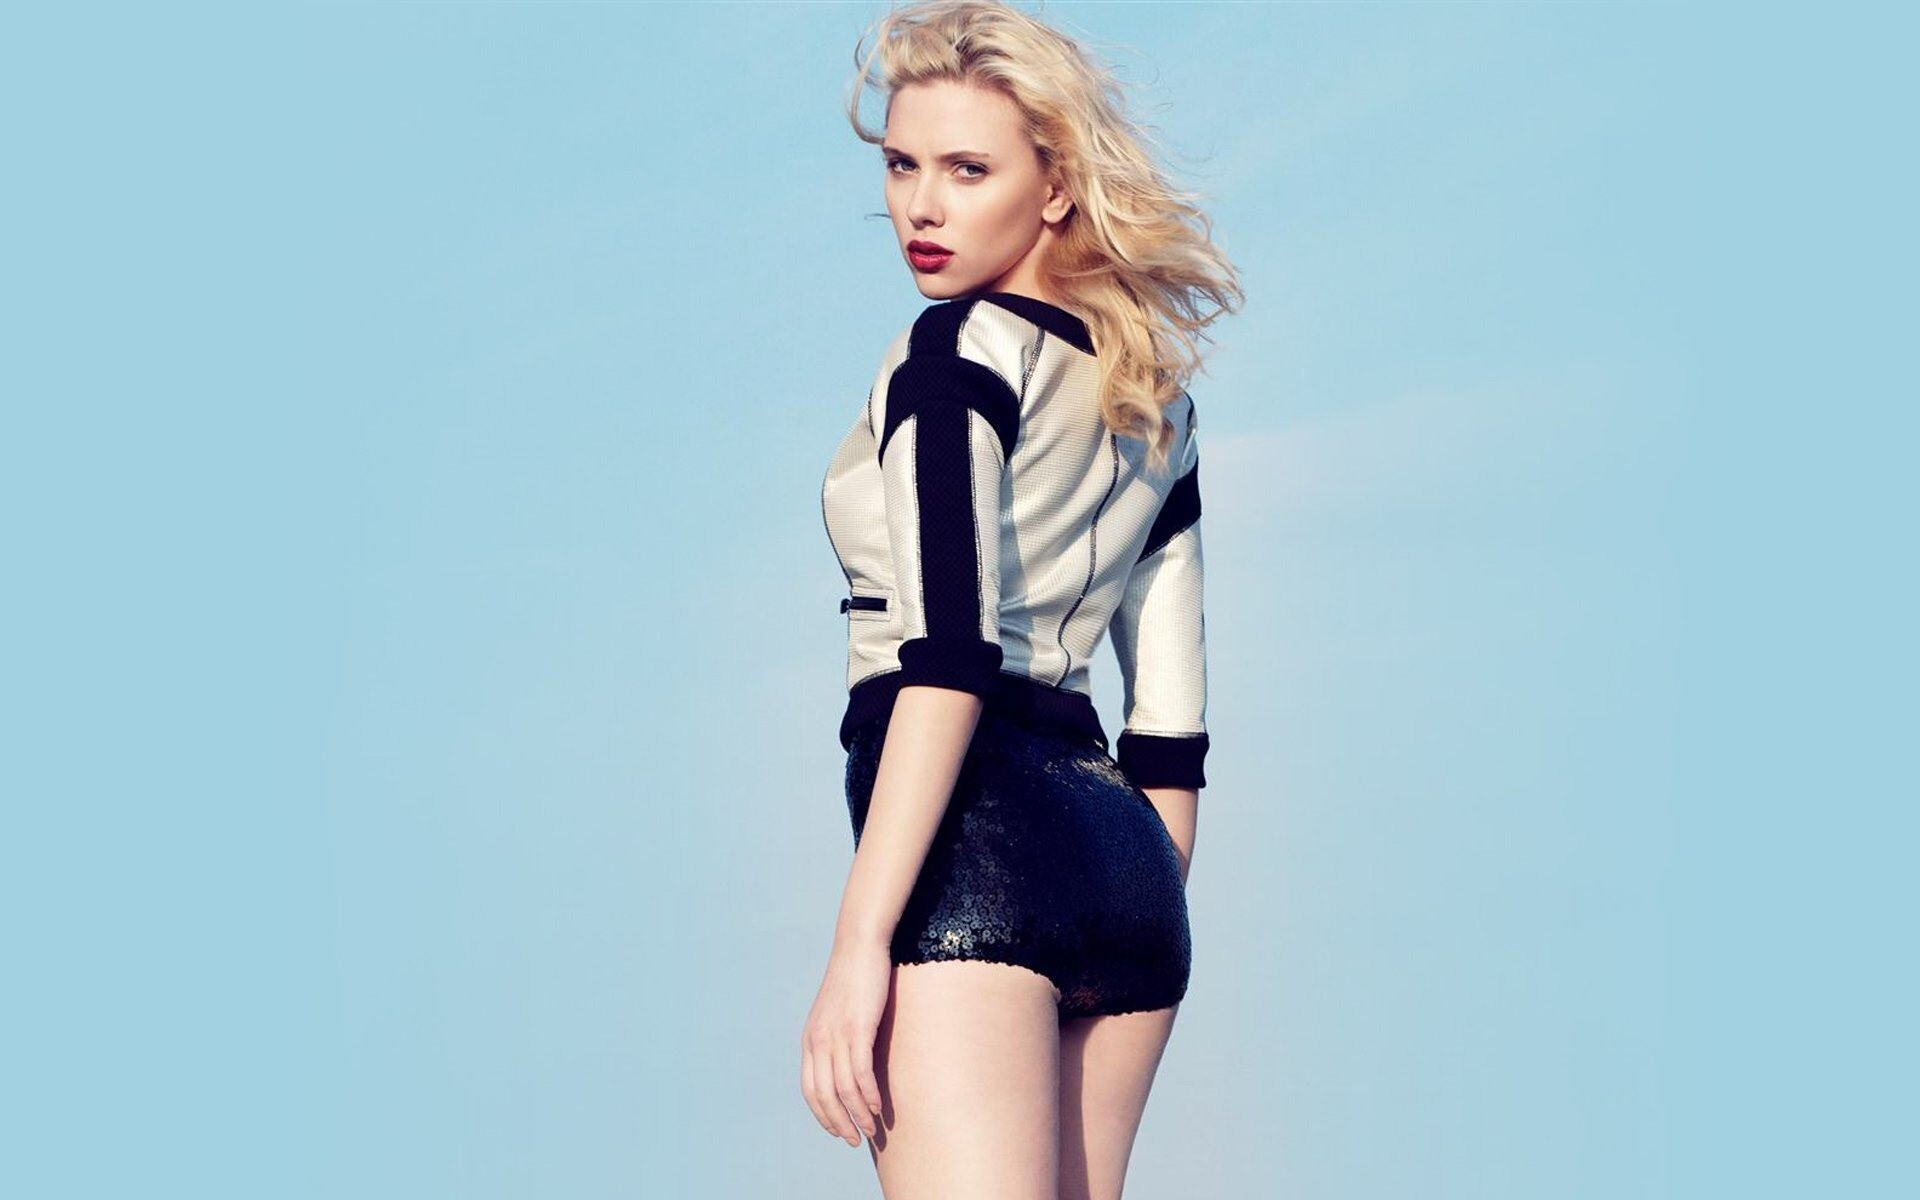 Hot Hollywood Actress Scarlett Johansson Nice Wallpapers Hd Wallpapers